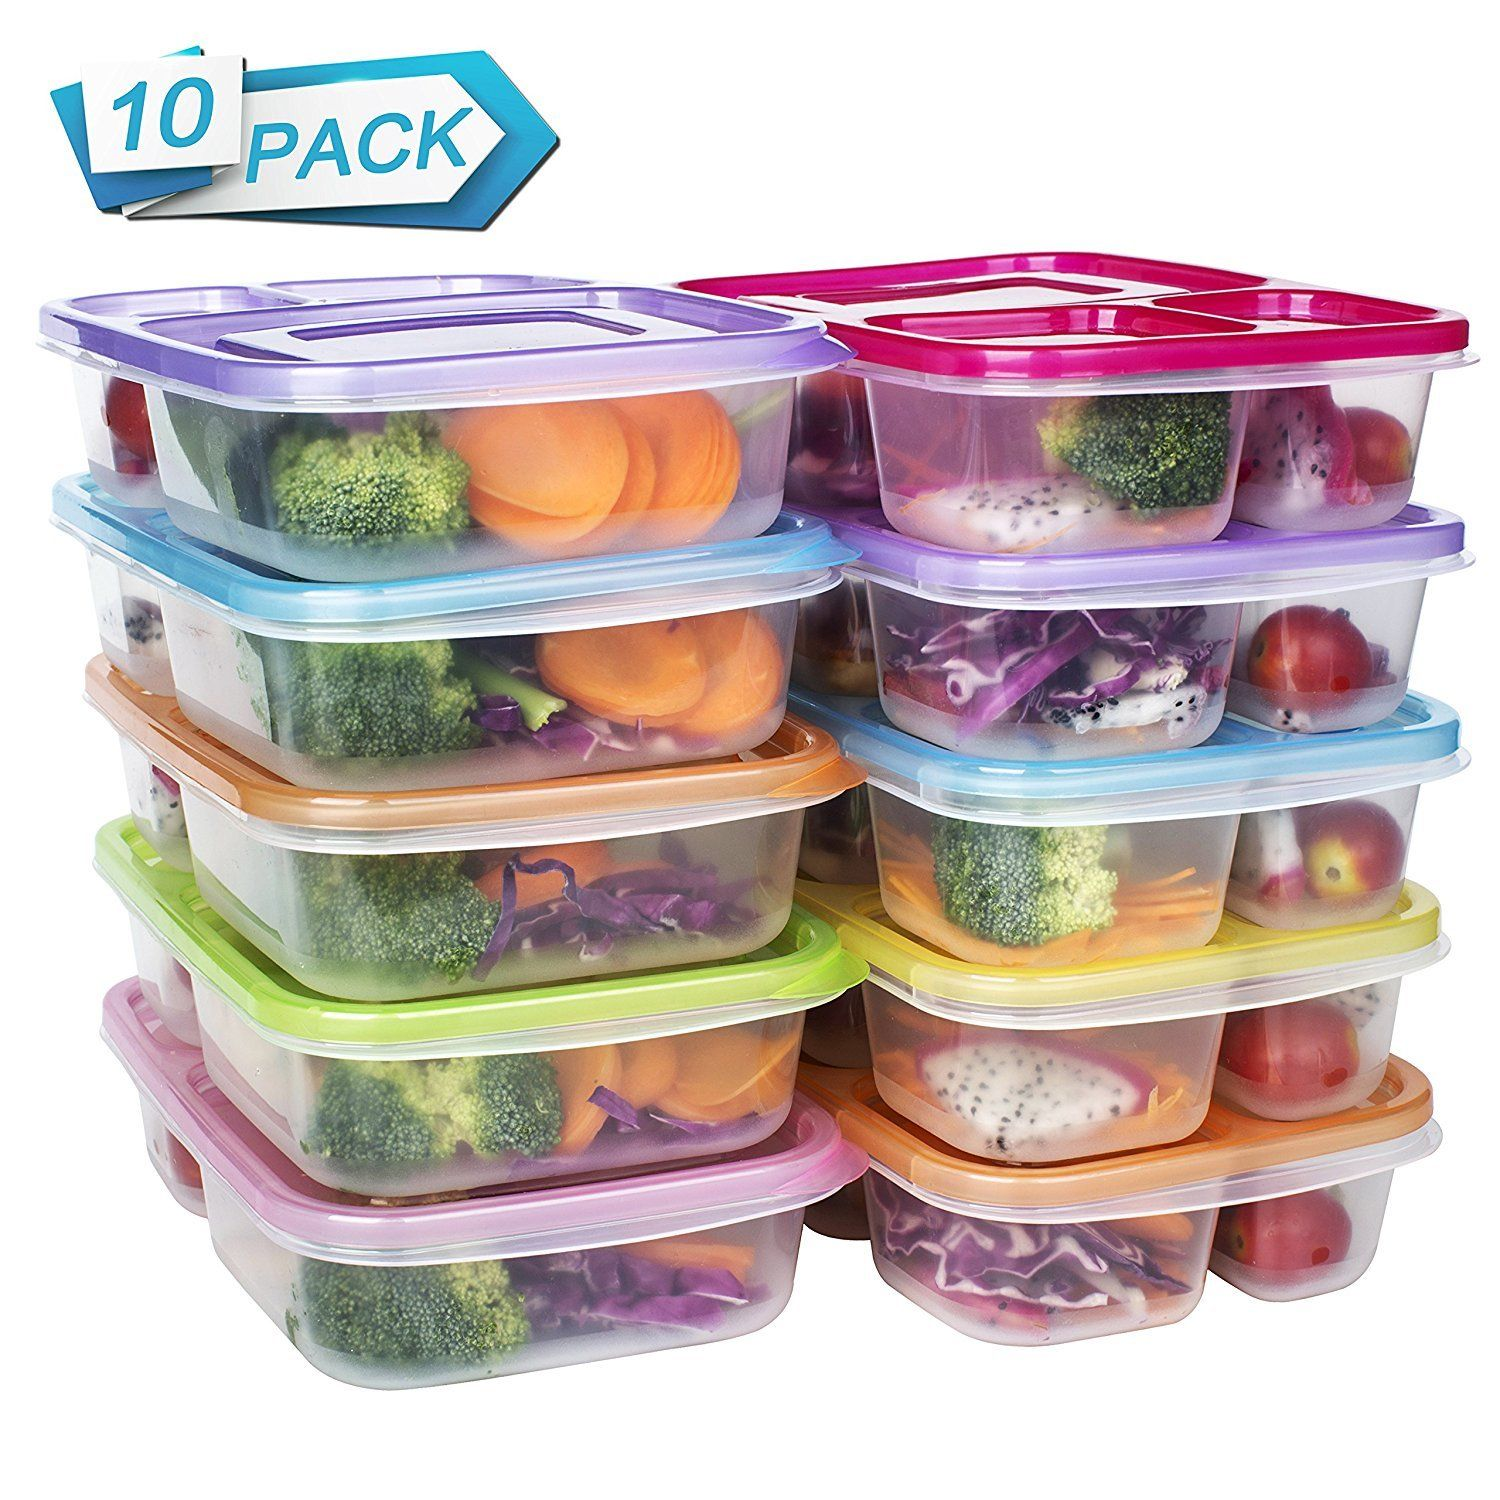 10 Meal Prep Containers Food Storage Reusable 3 Compartment Plastic Microwavable 1